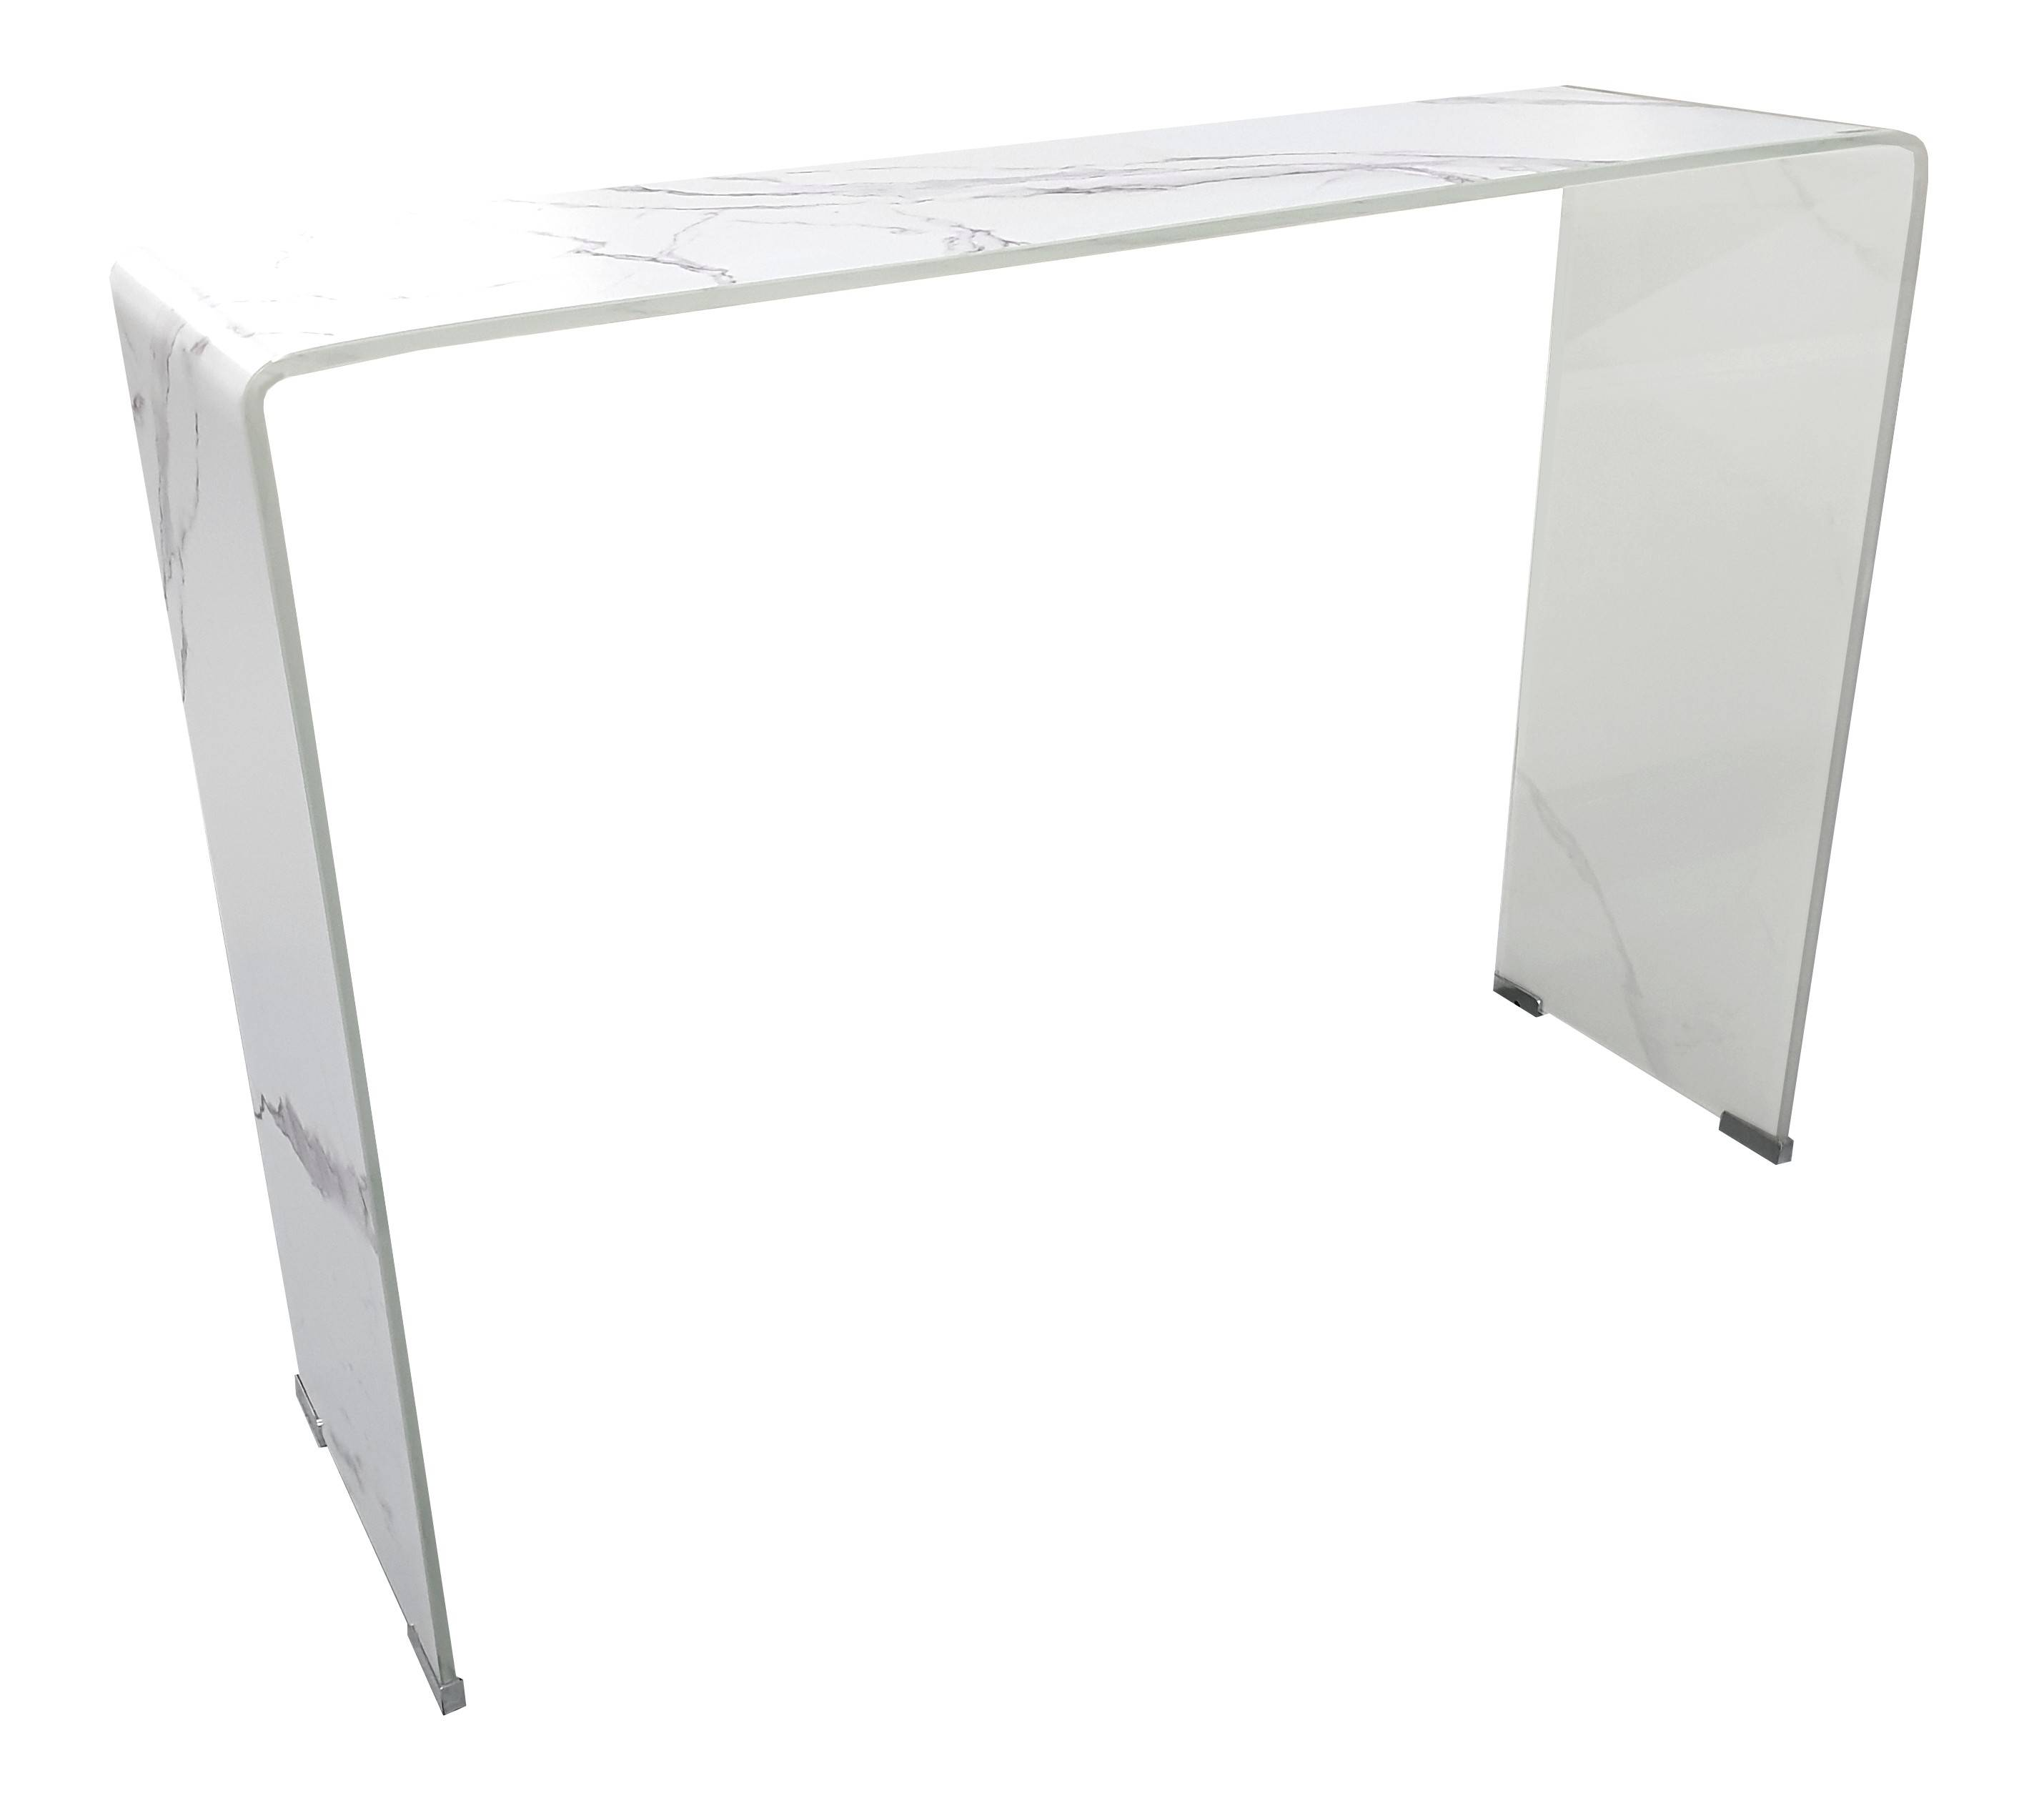 gdegdesign Console design verre trempé imitation marbre blanc - Kingston